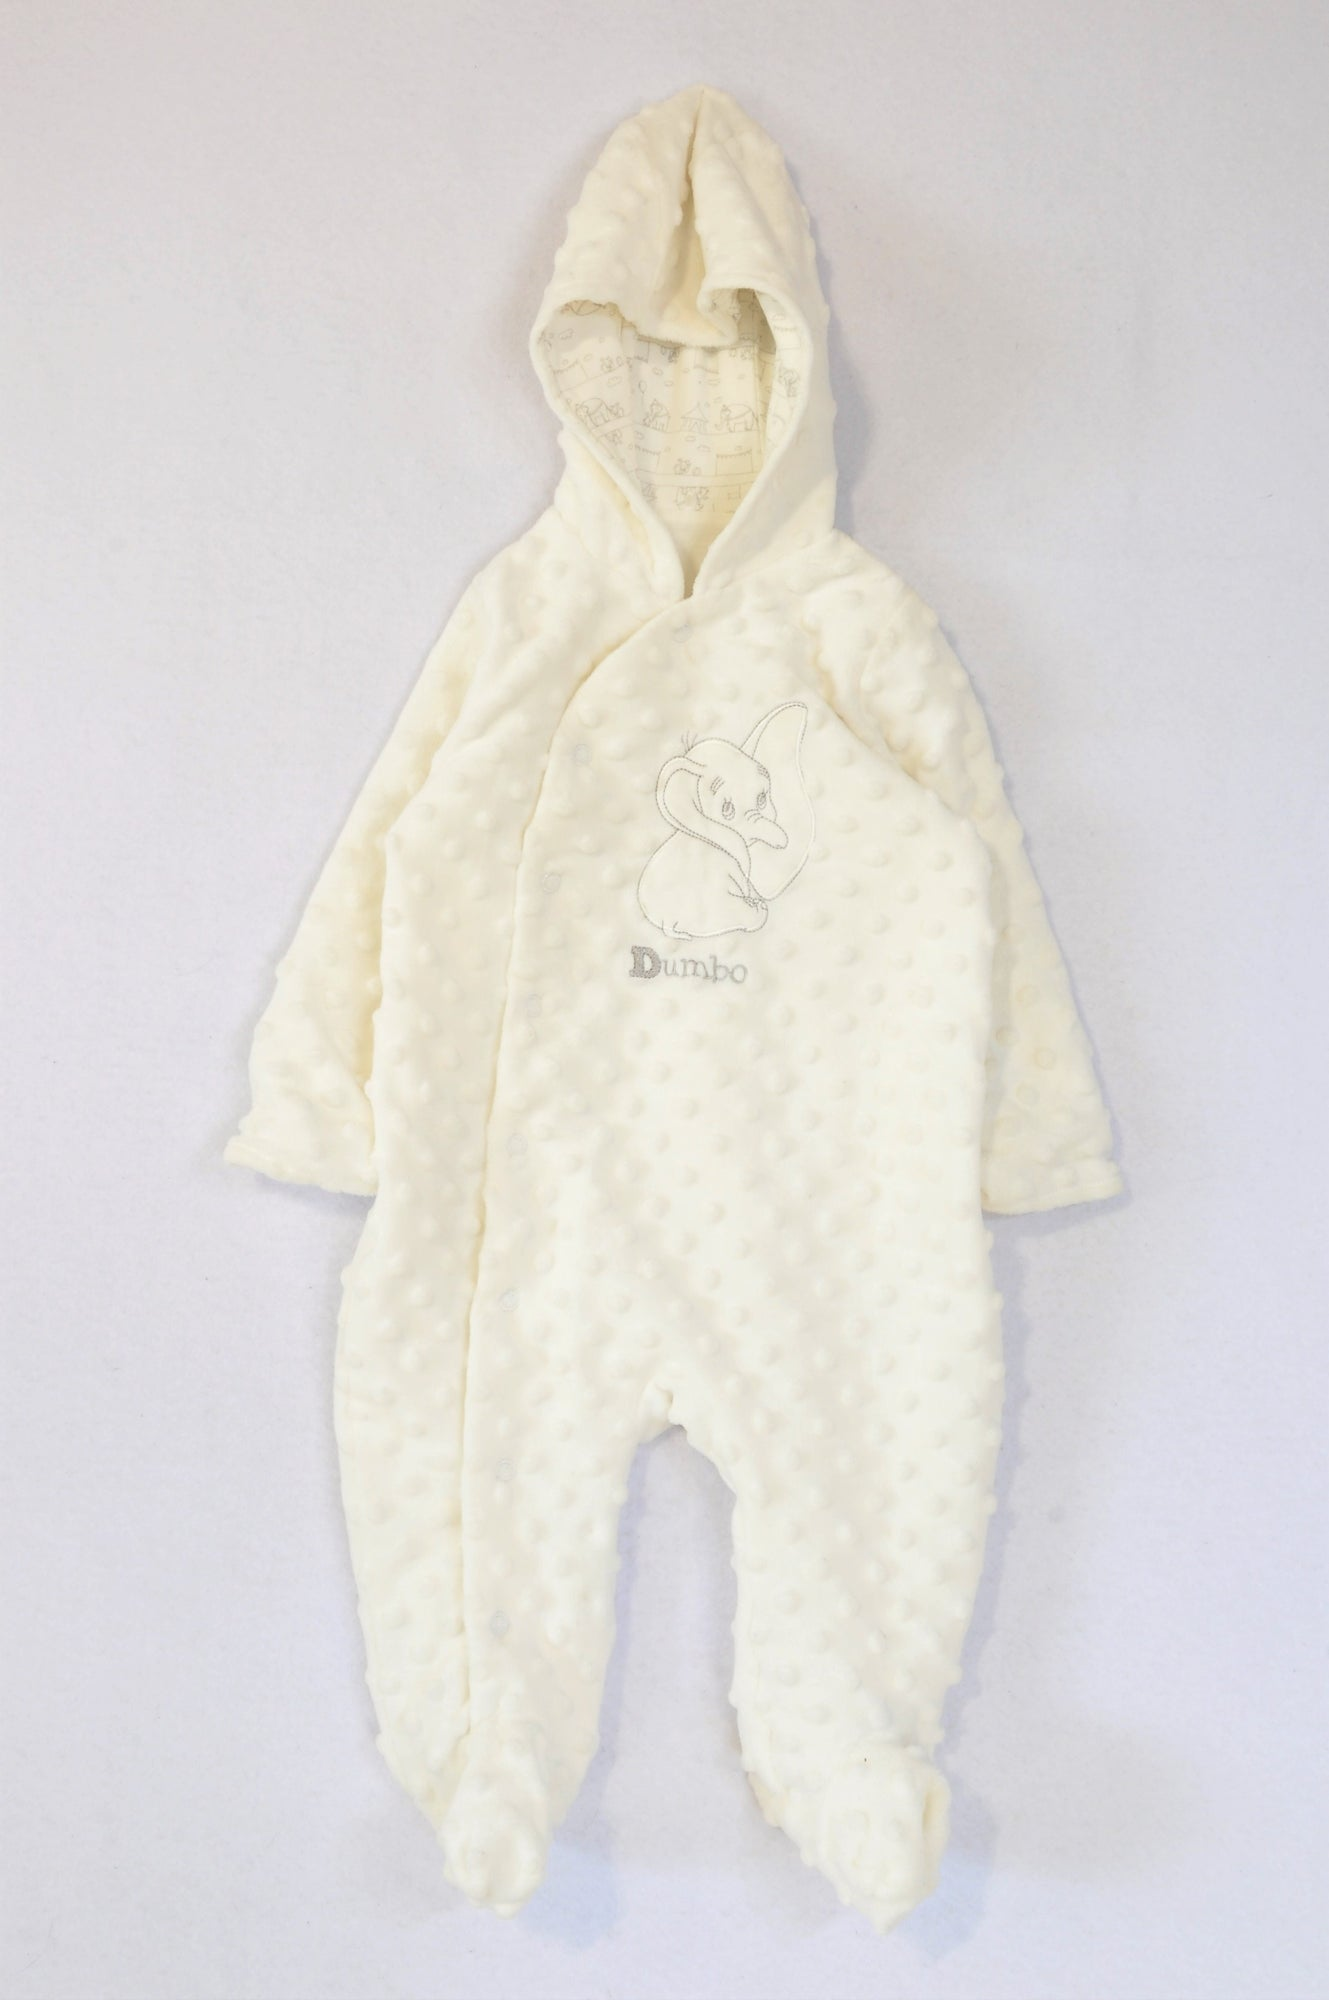 Disney White Raised Dot Fleece Hooded Dumbo Onesie Unisex 3-6 months